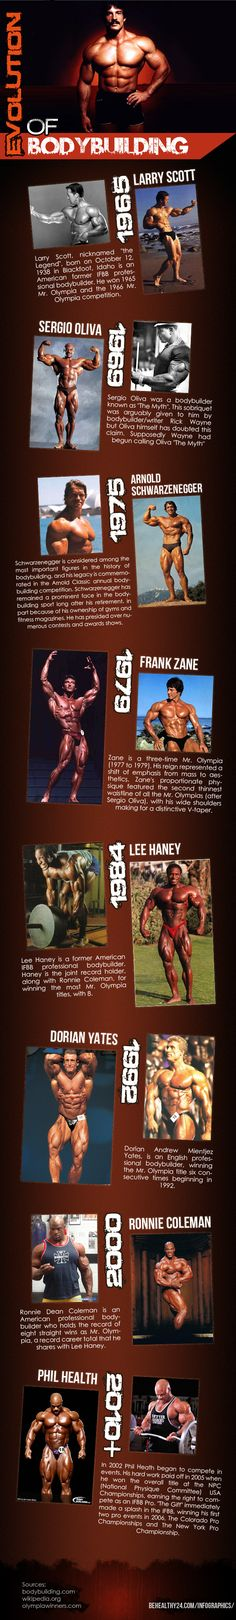 A great Infographic showing the Evolution of #Bodybuilding from Larry Scott in 1965 to Phil Heath in our days!